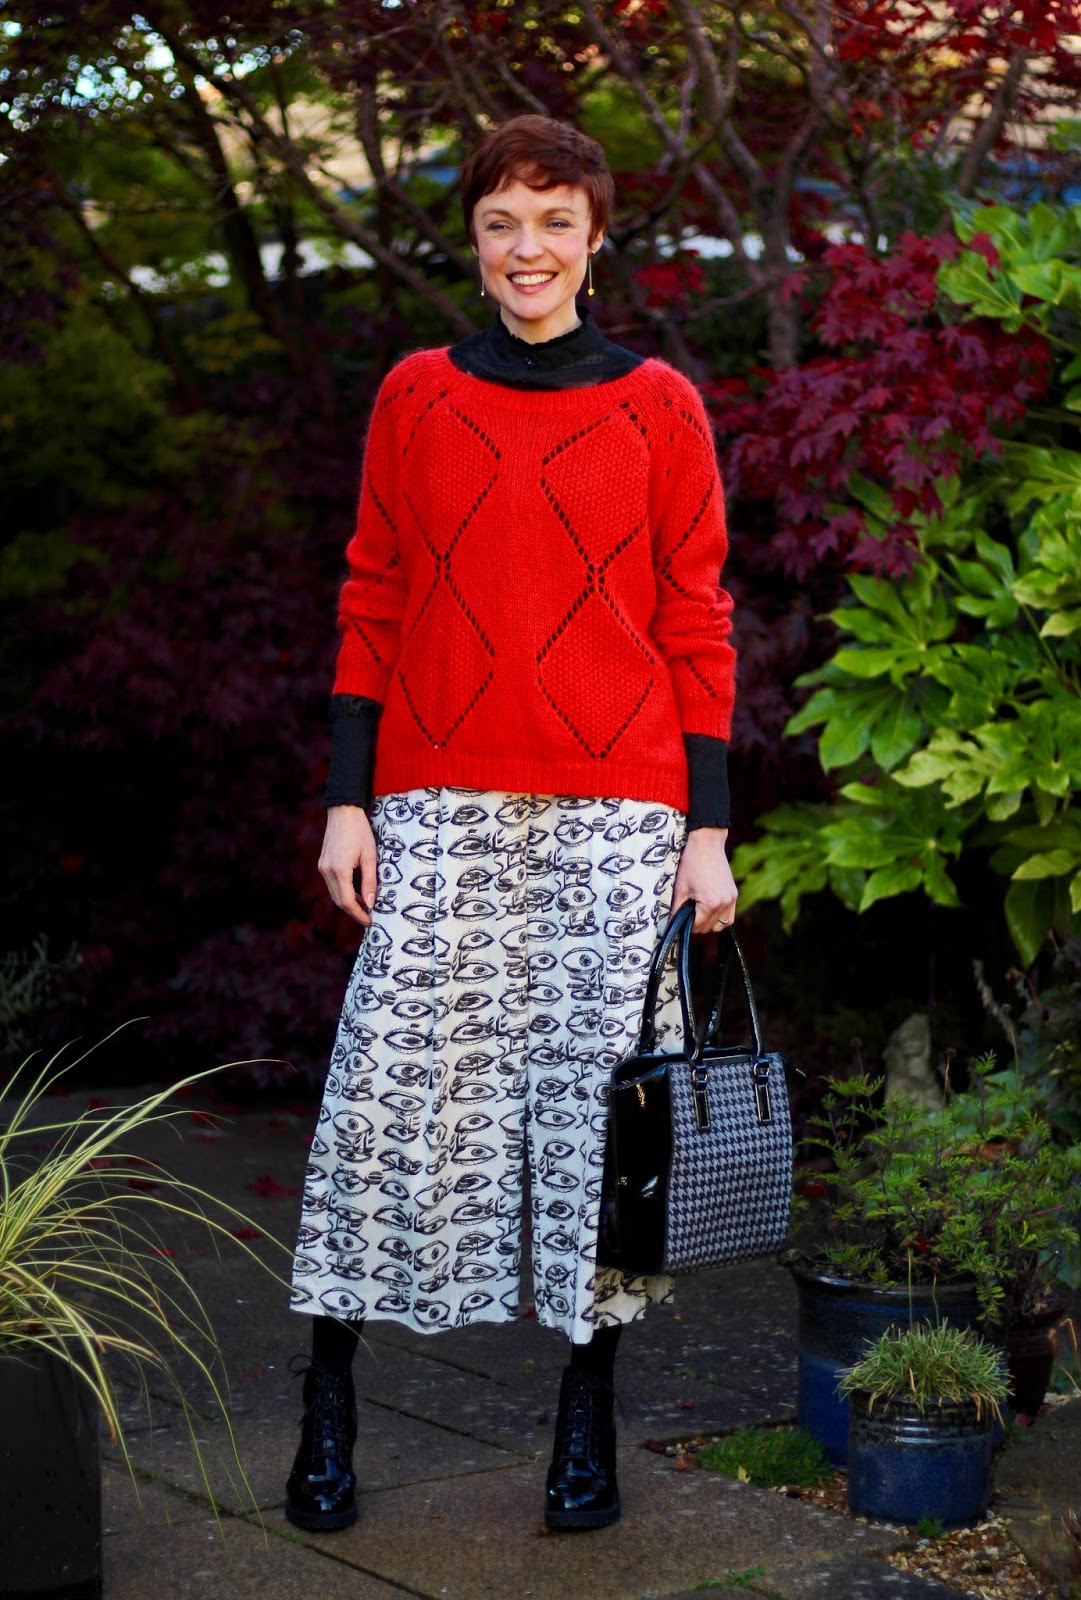 Wearing Culottes in Autumn | Tights & Boots | Fake Fabulous, over 40.